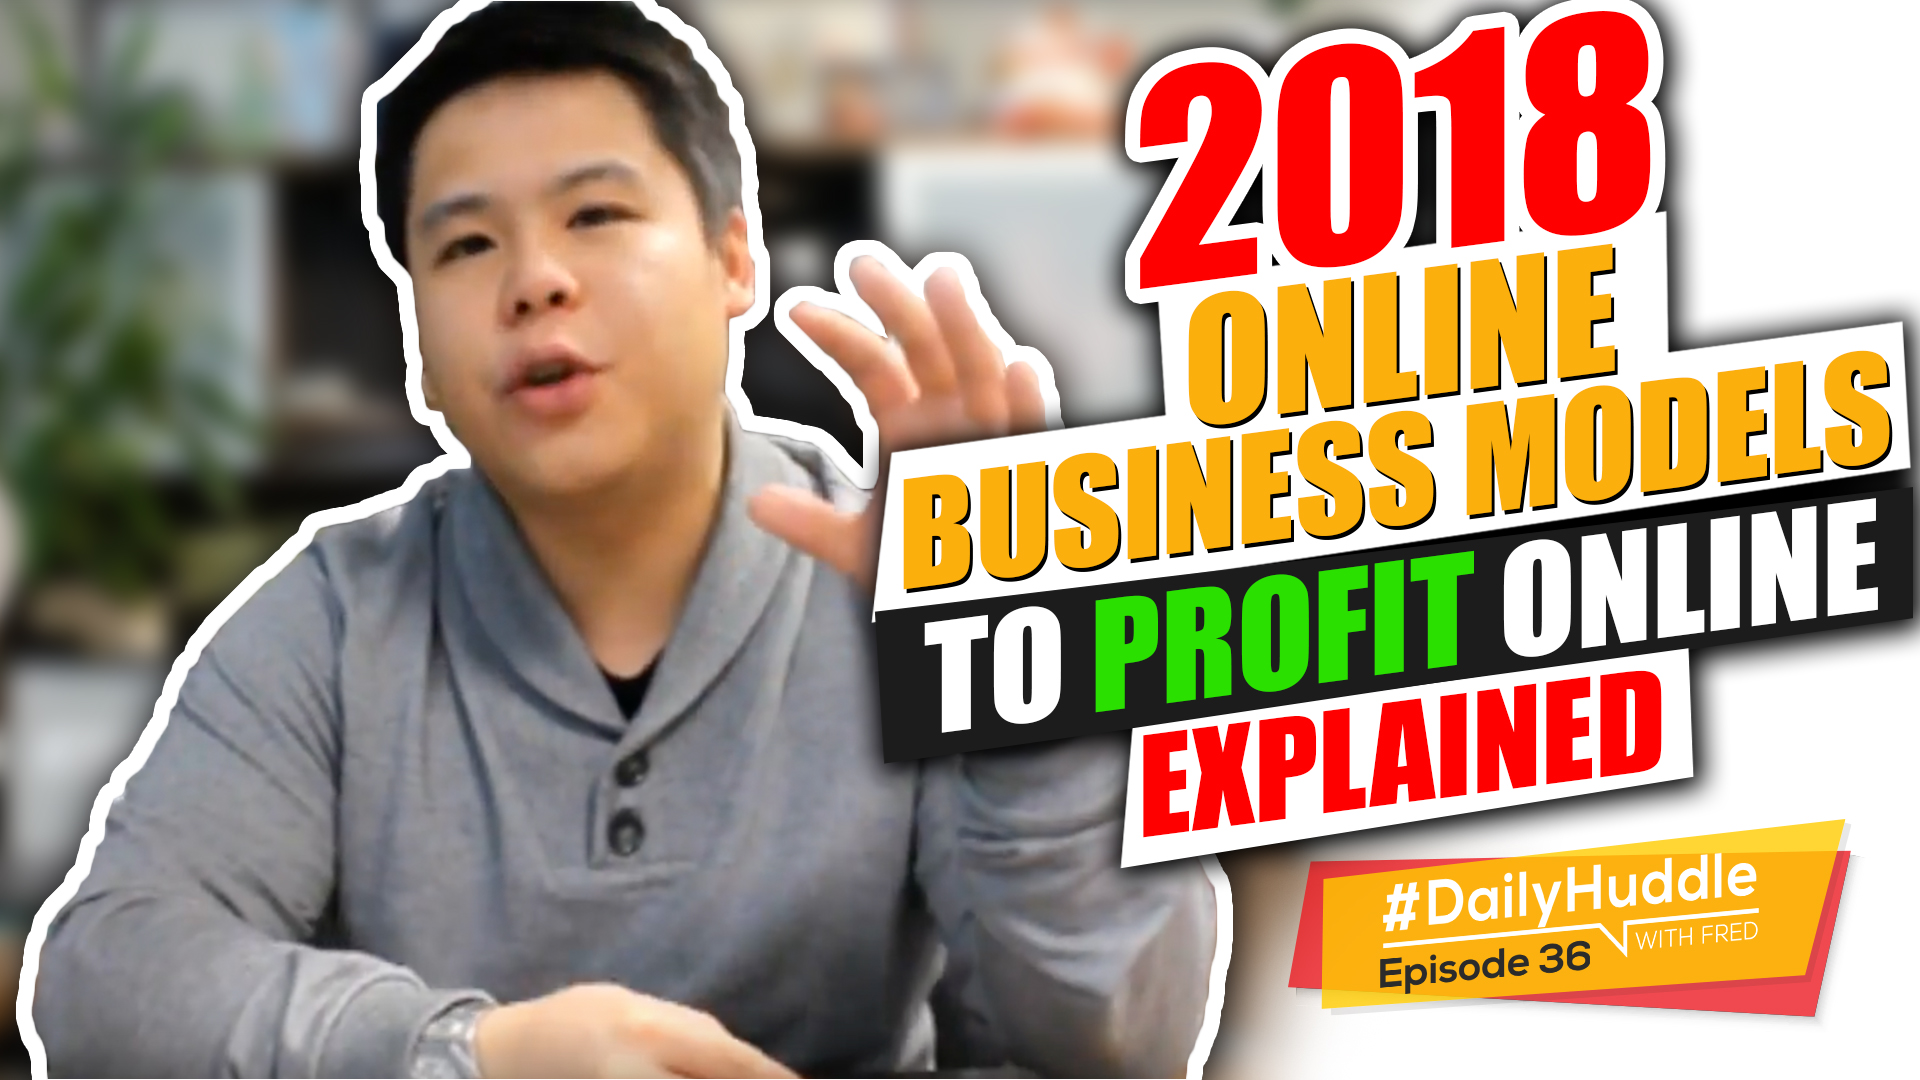 Daily Huddle - Ep 36 | 2018 Online Business Models To PROFIT Online EXPLAINED